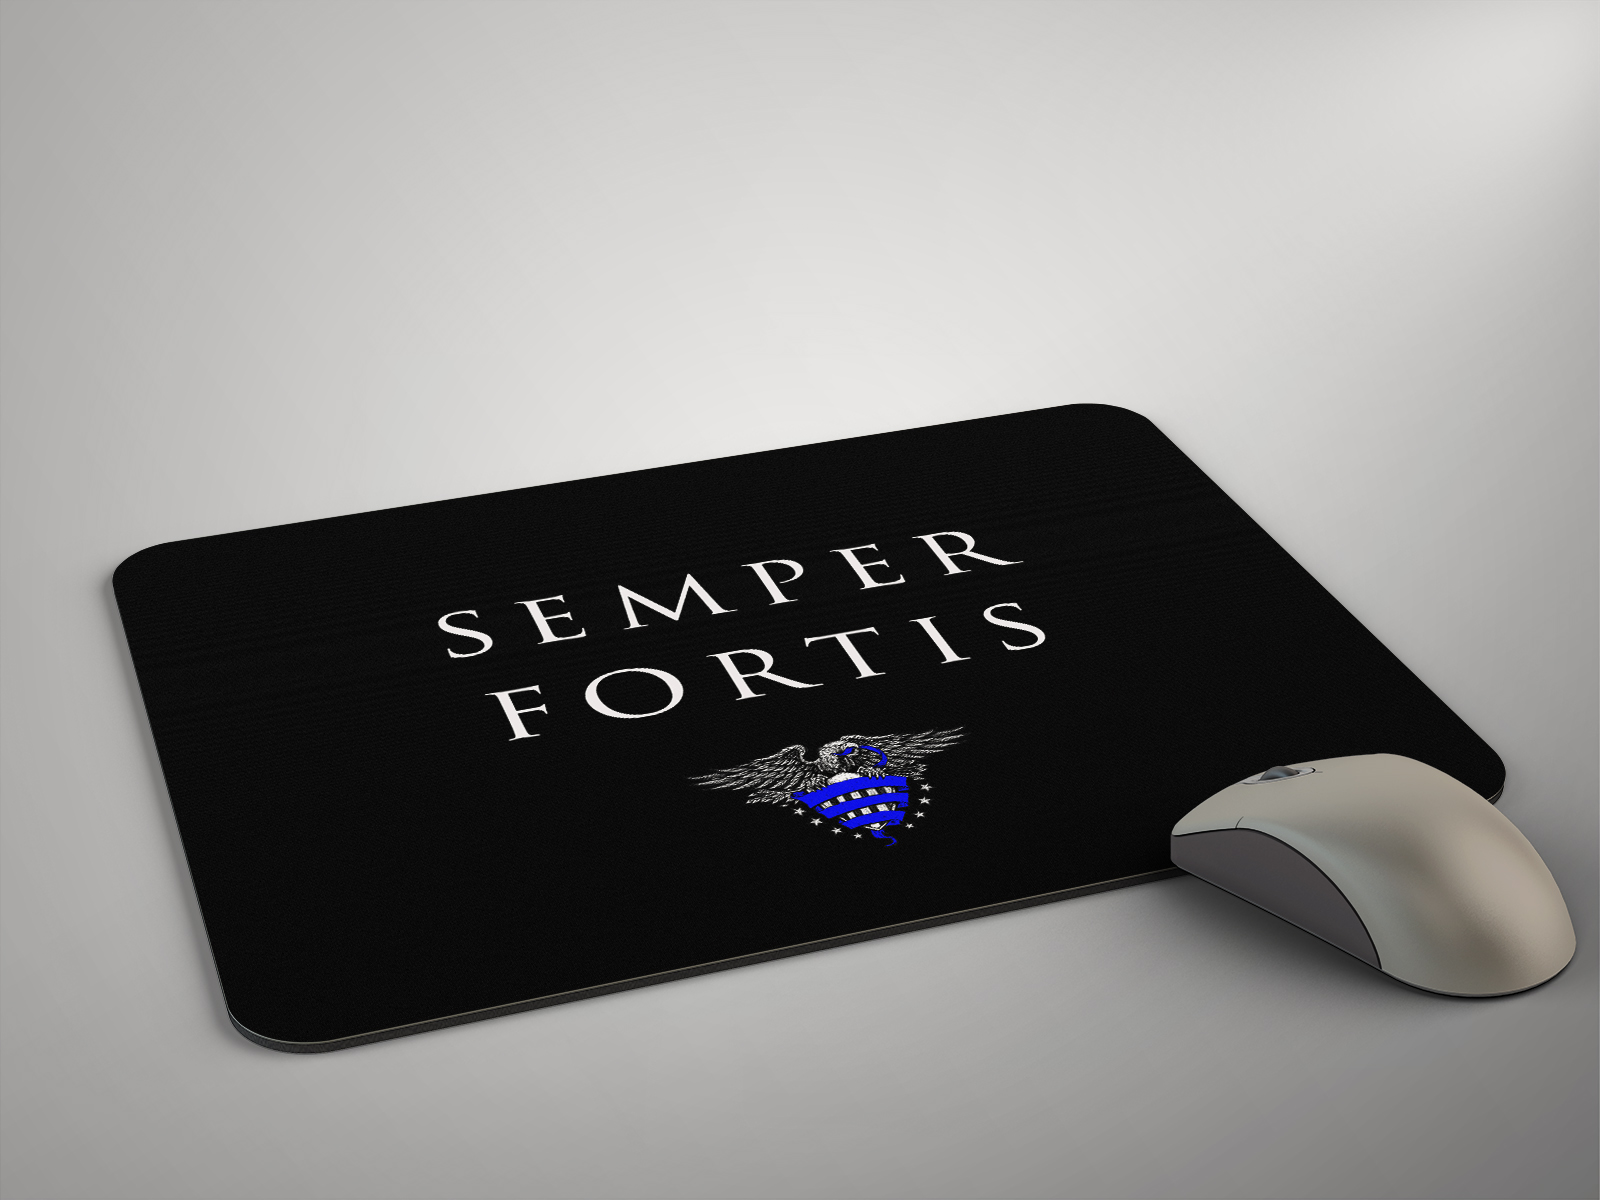 Police Life Mouse Pad Police Motto Semper Fortis Police Life